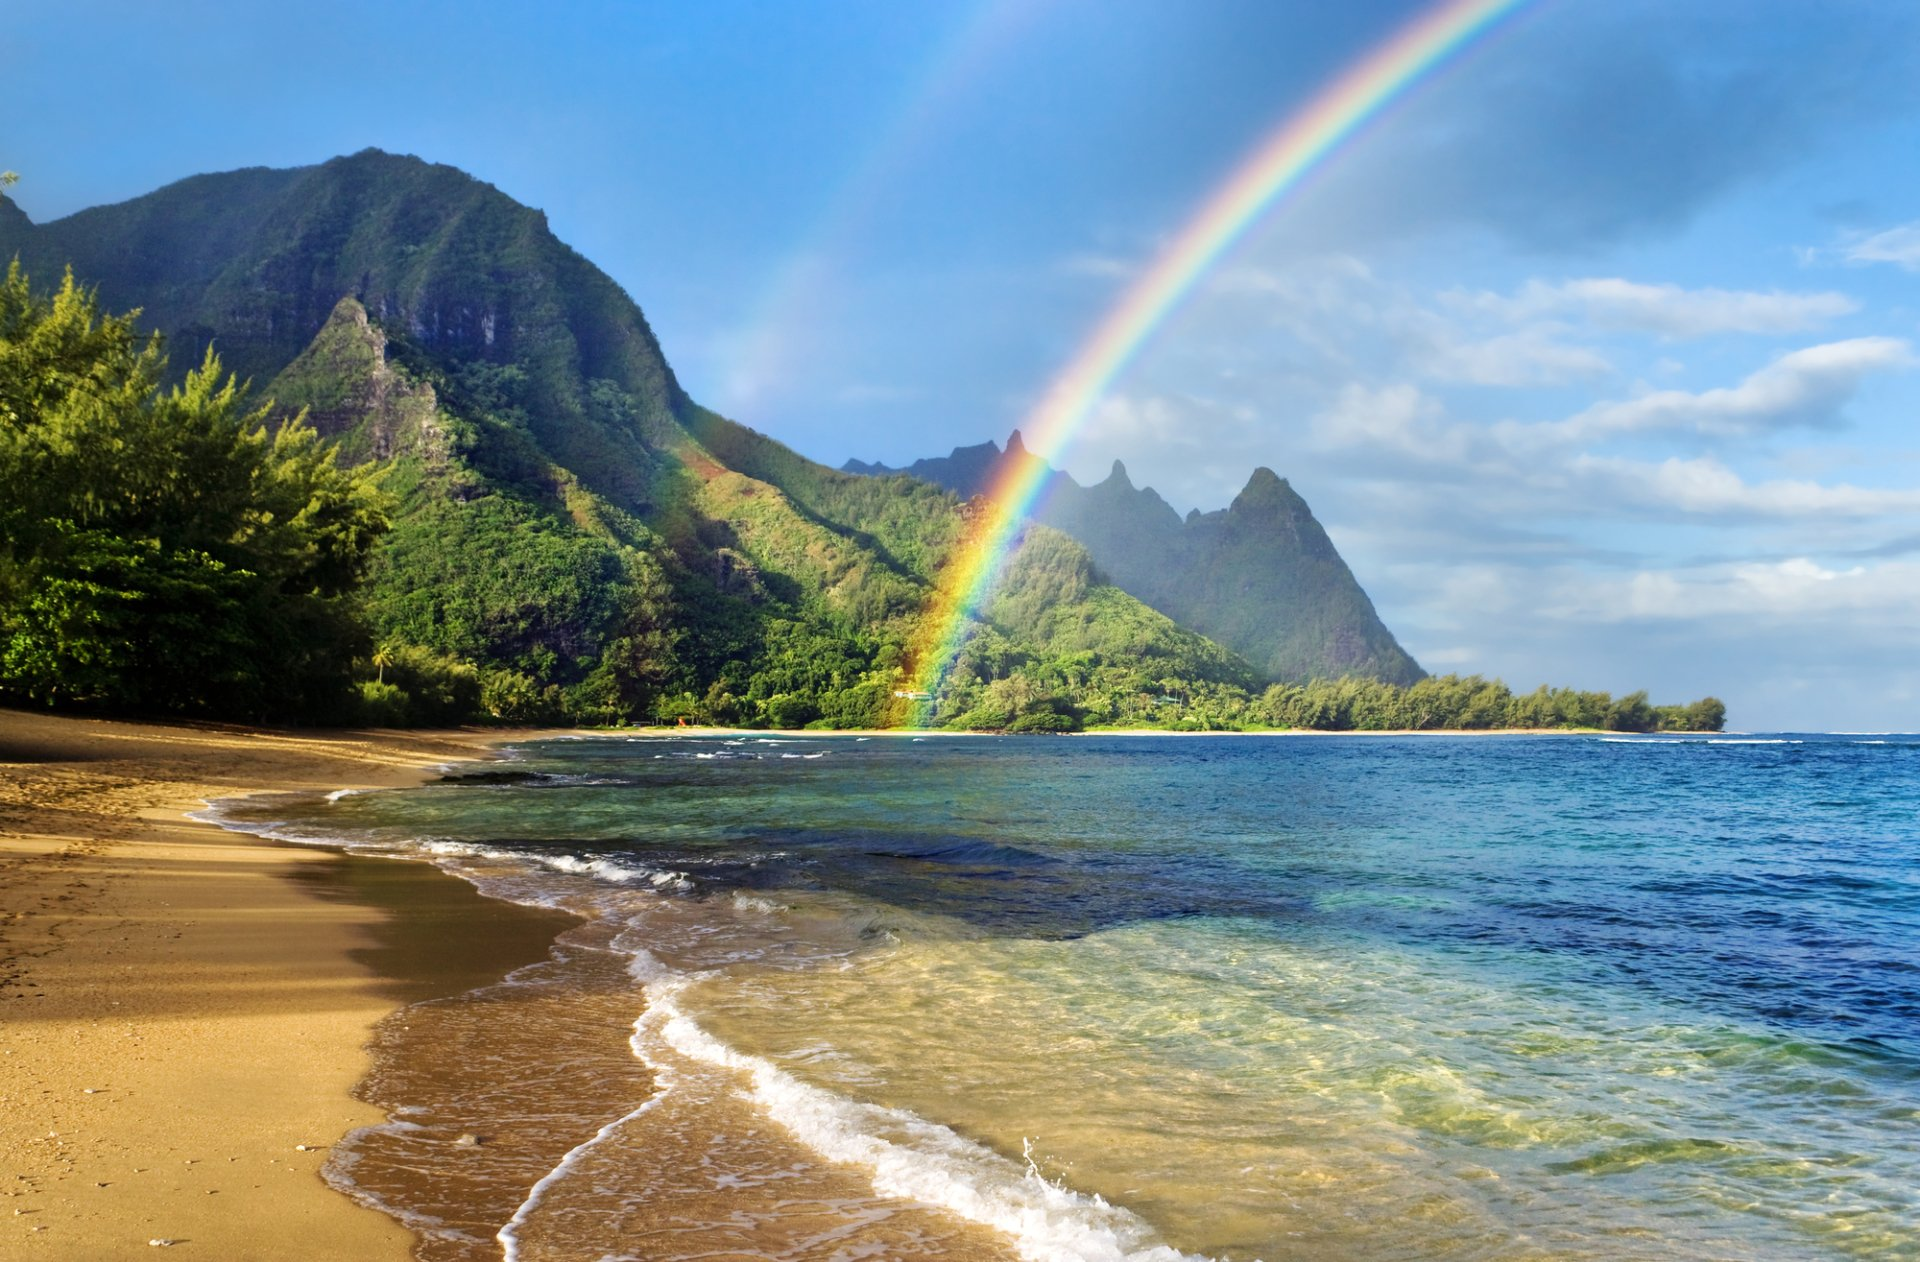 Earth - Rainbow  Nature Landscape Beach Sand Vegetation Mountain Water Sea Wallpaper